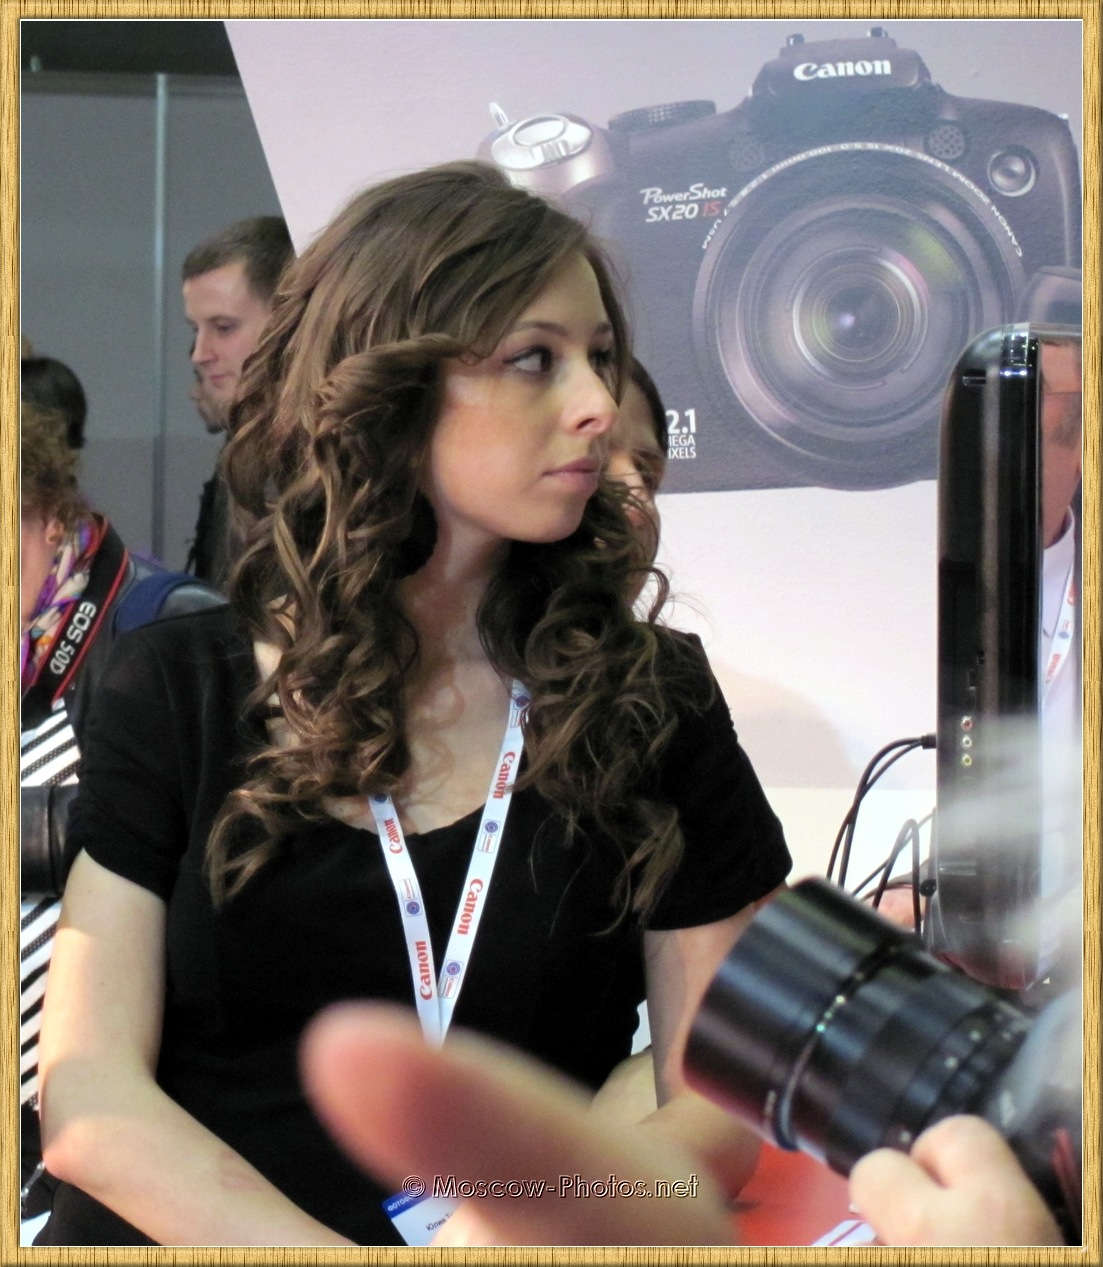 Canon Girl at Photoforum - 2010, Moscow